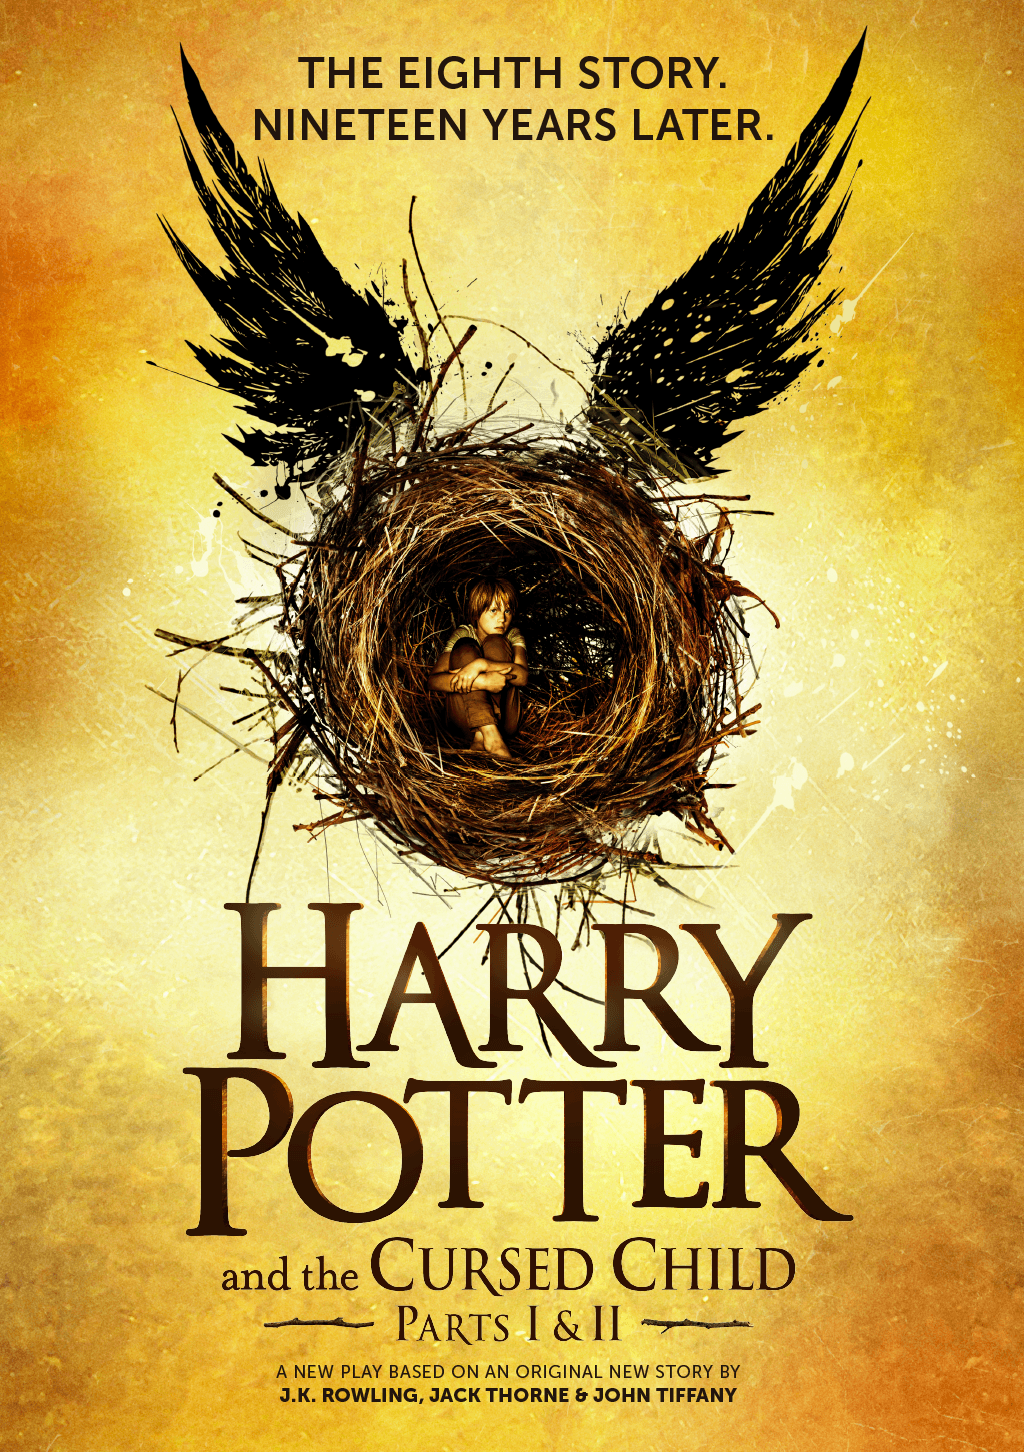 Harry Potter and the Cursed Child2